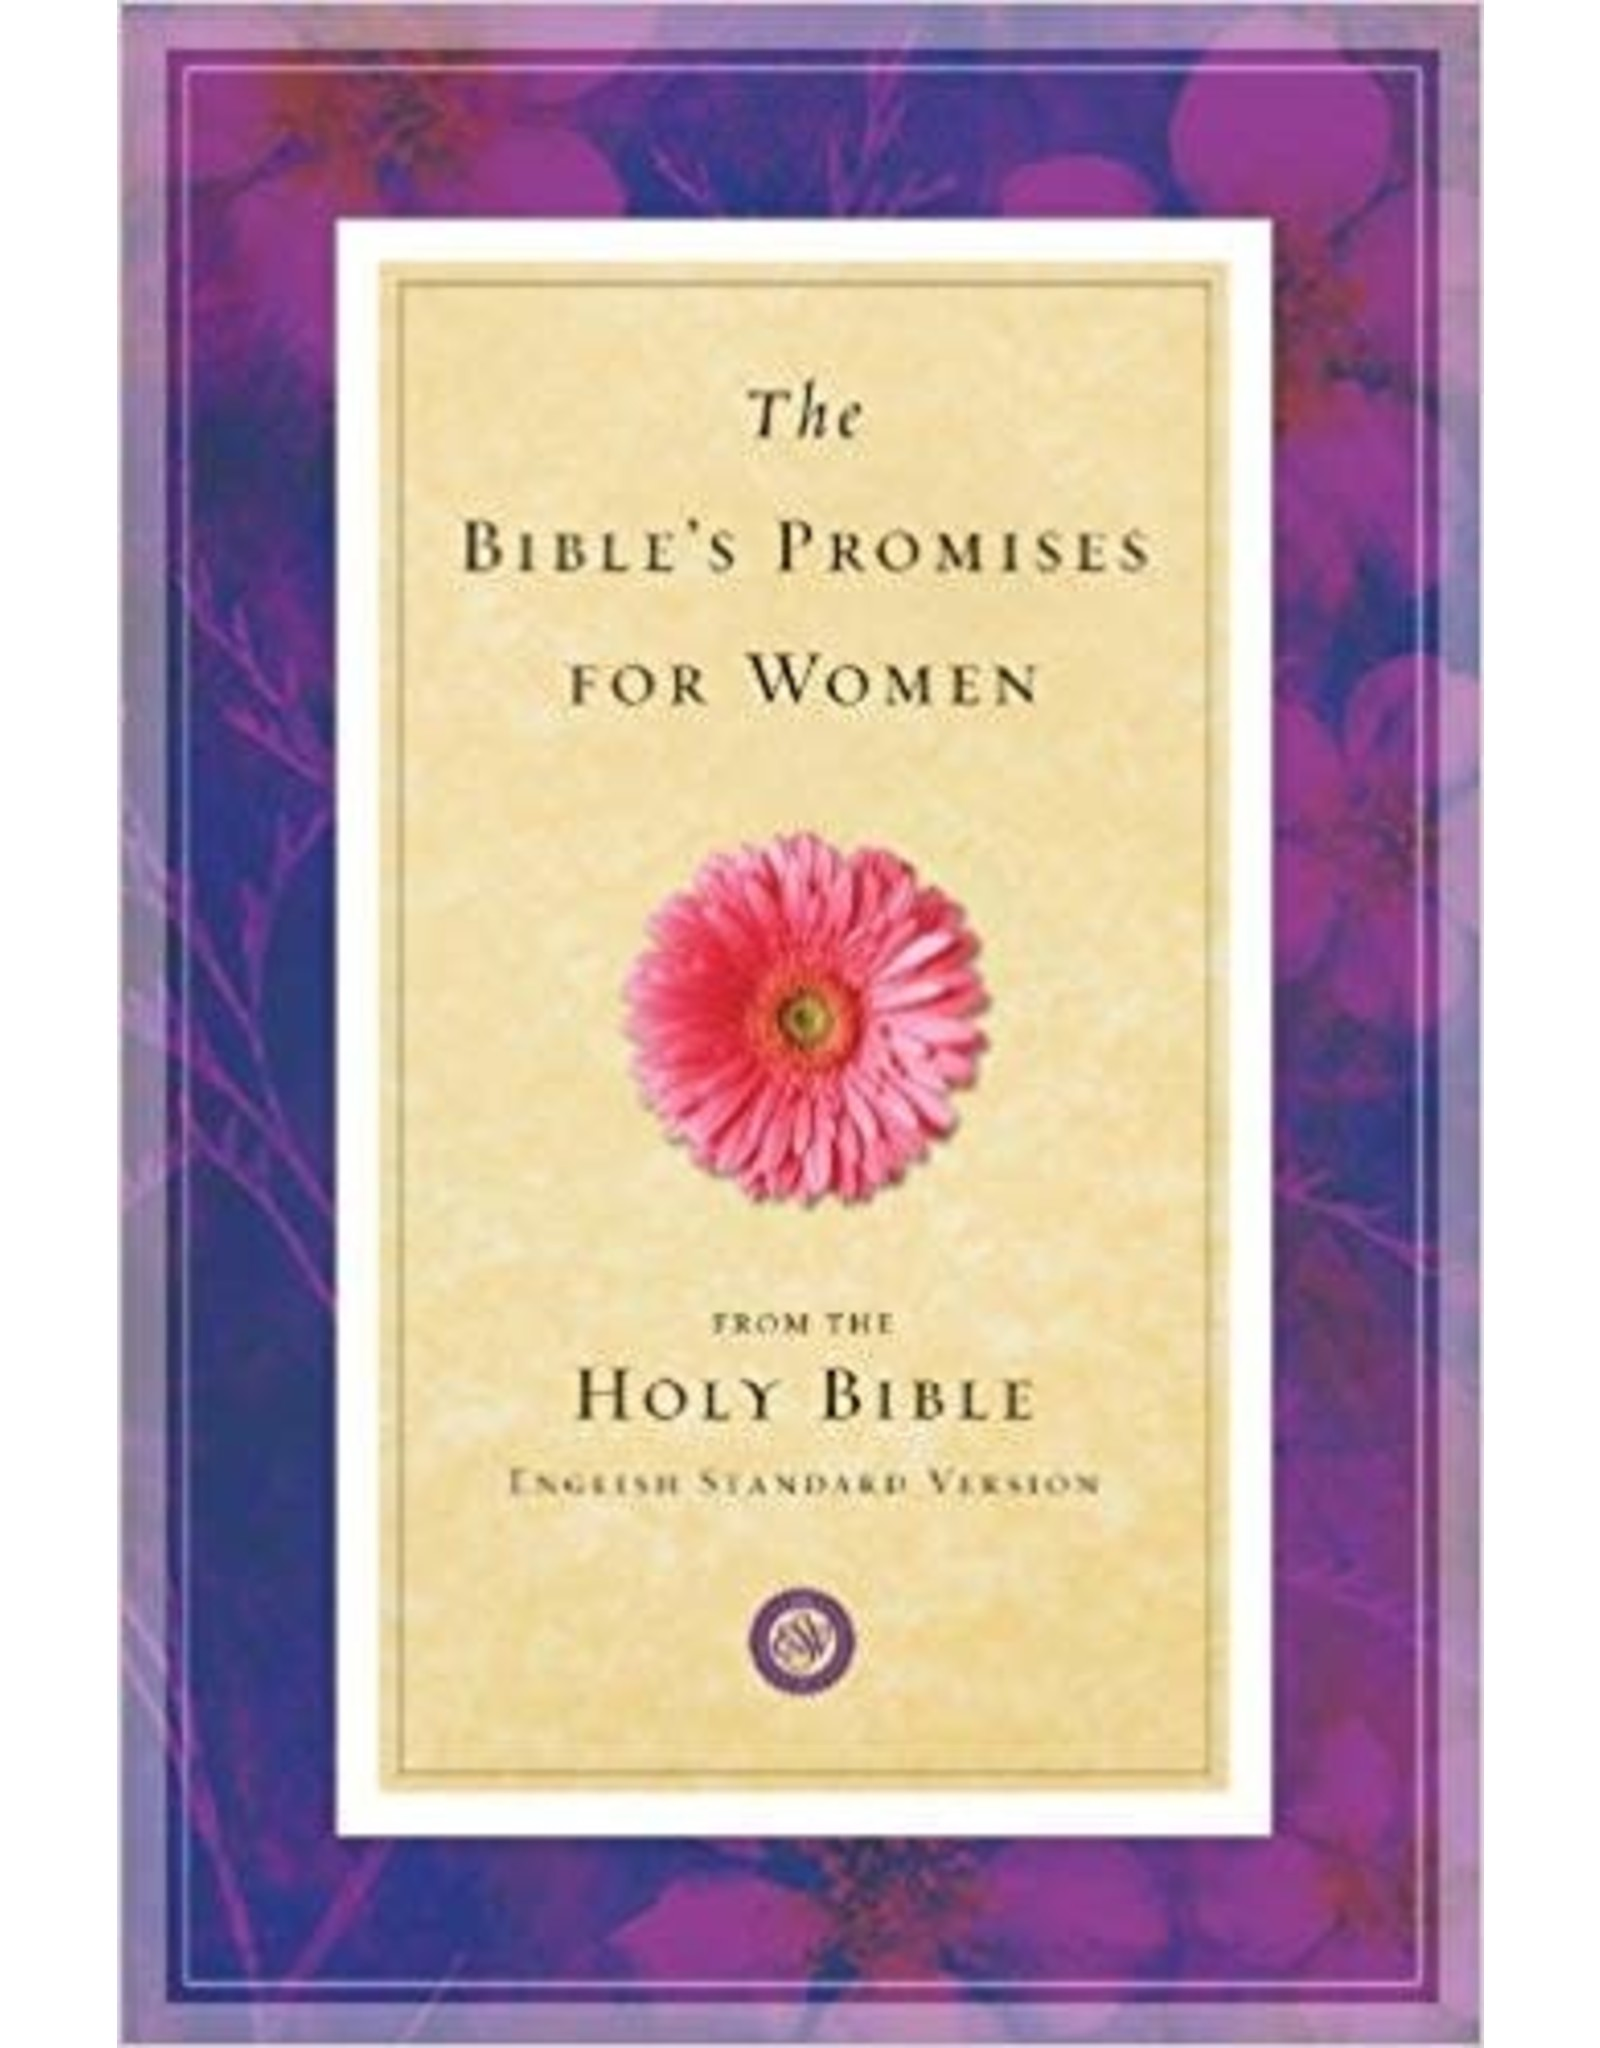 Crossway Bible's Promises for Women, The